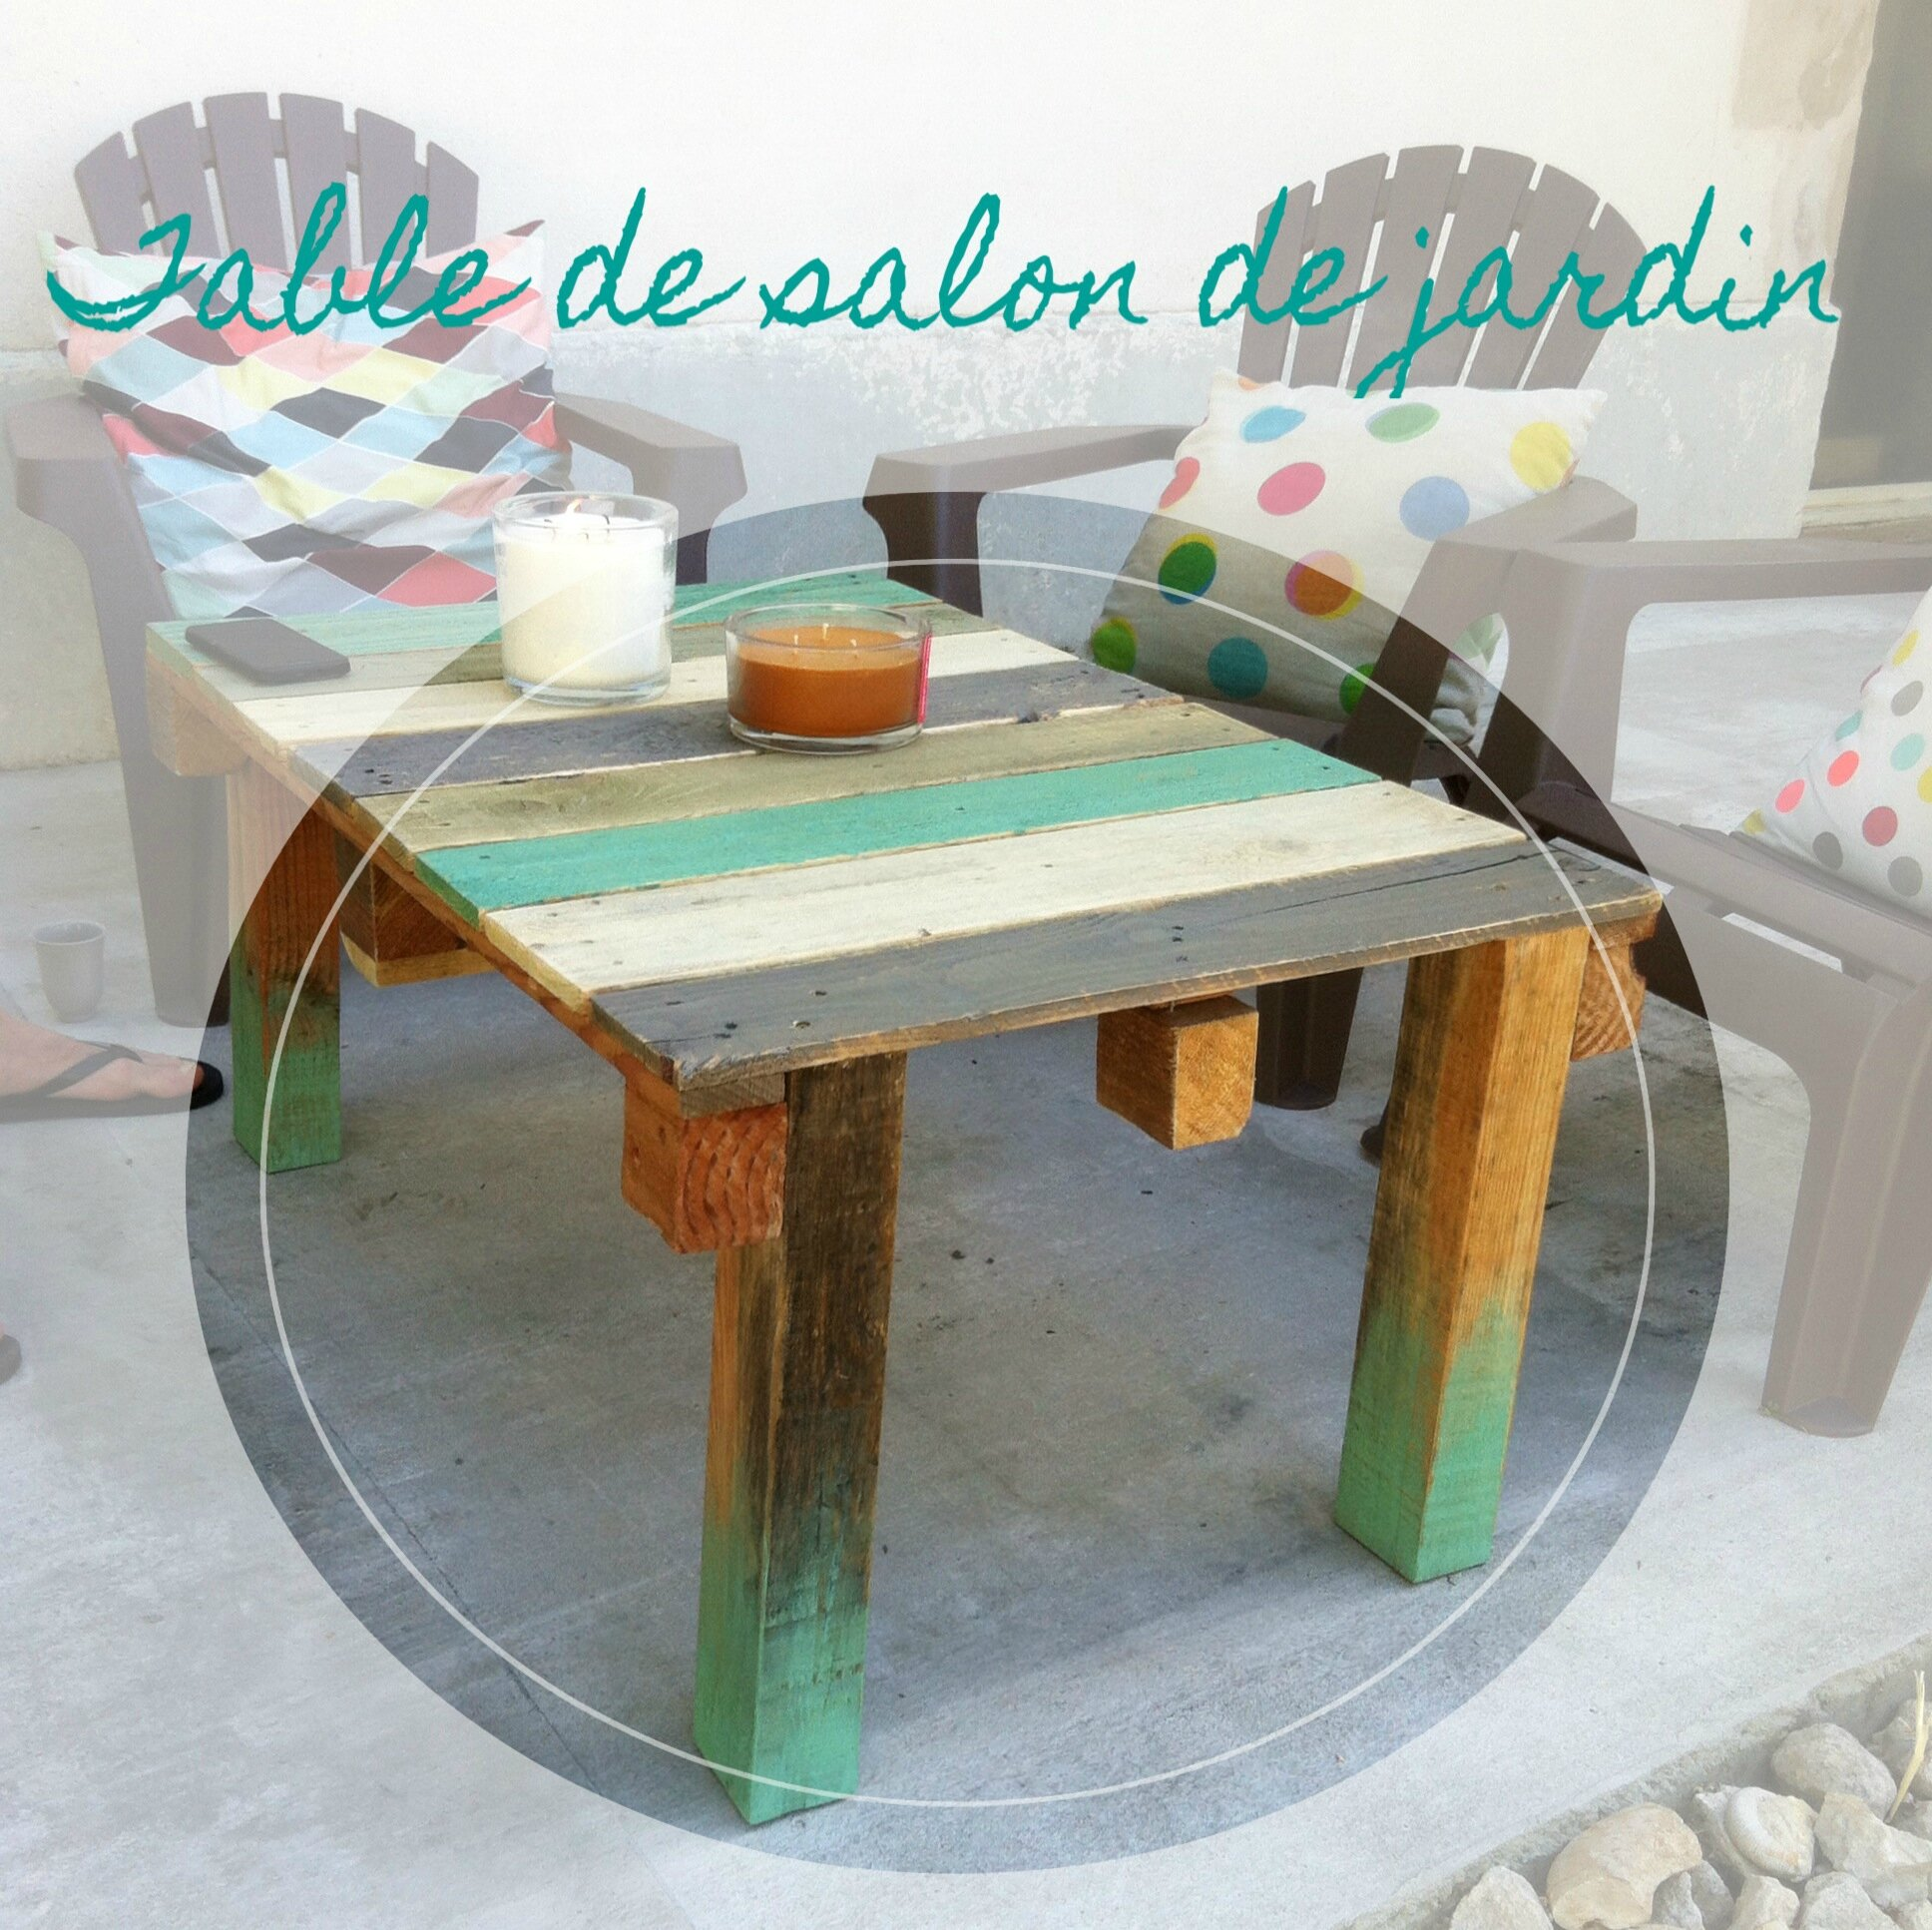 Beautiful table salon de jardin en palette gallery awesome interior home satellite for Construire table de jardin en bois